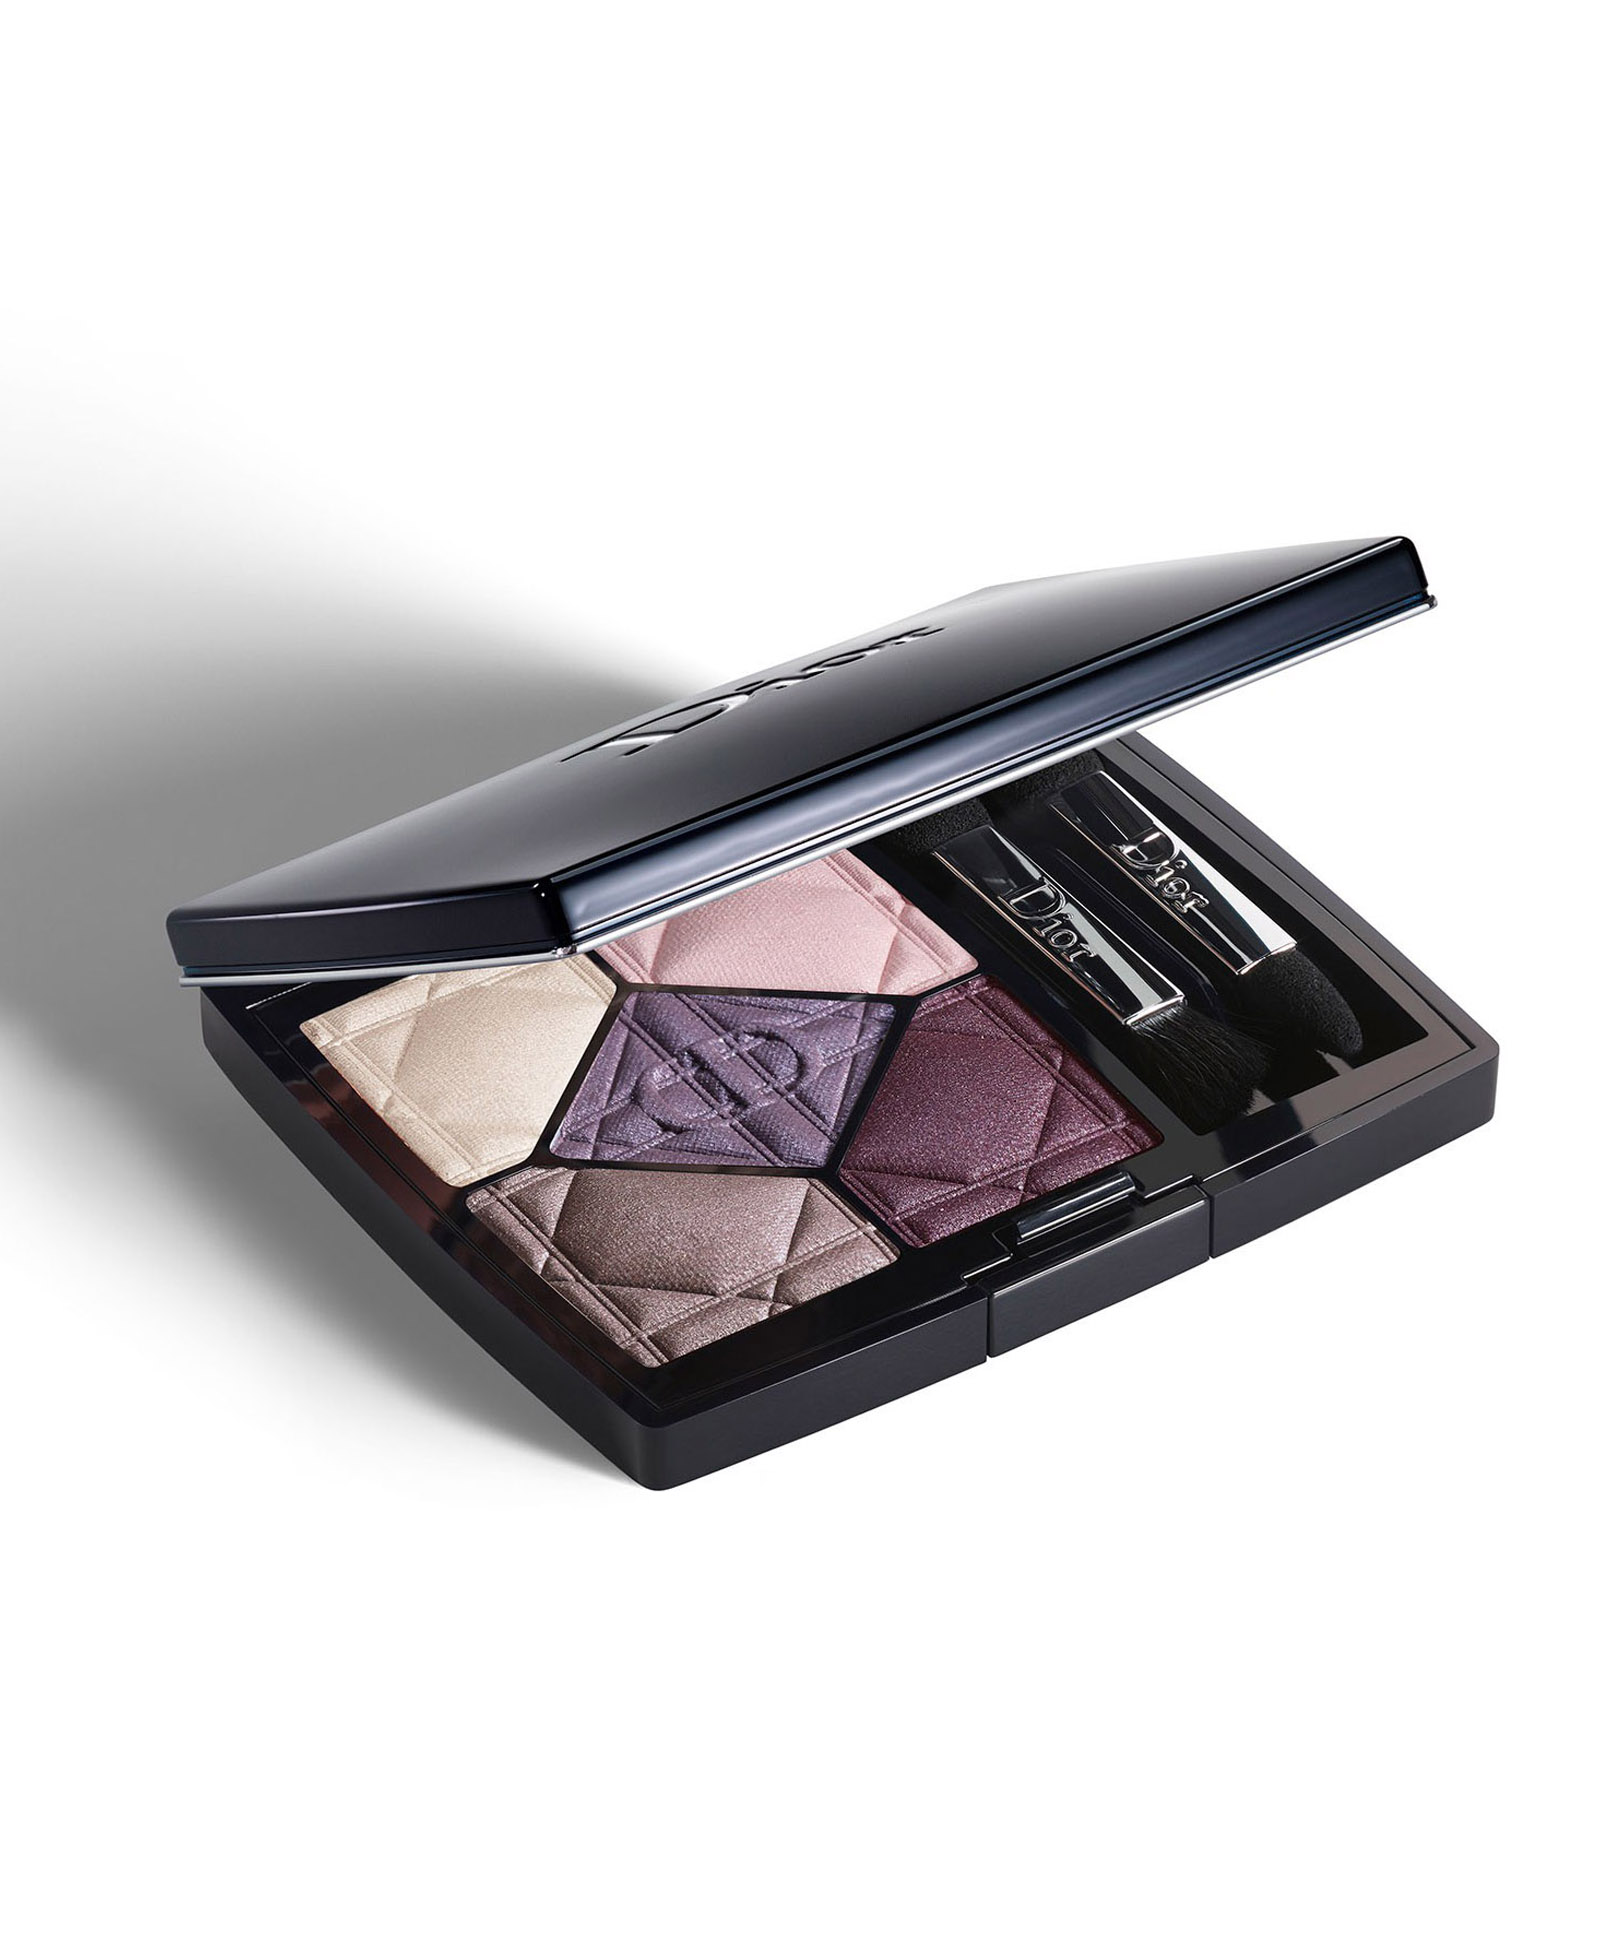 5 Couleurs Eyeshadow Palette Ounousa Reviews